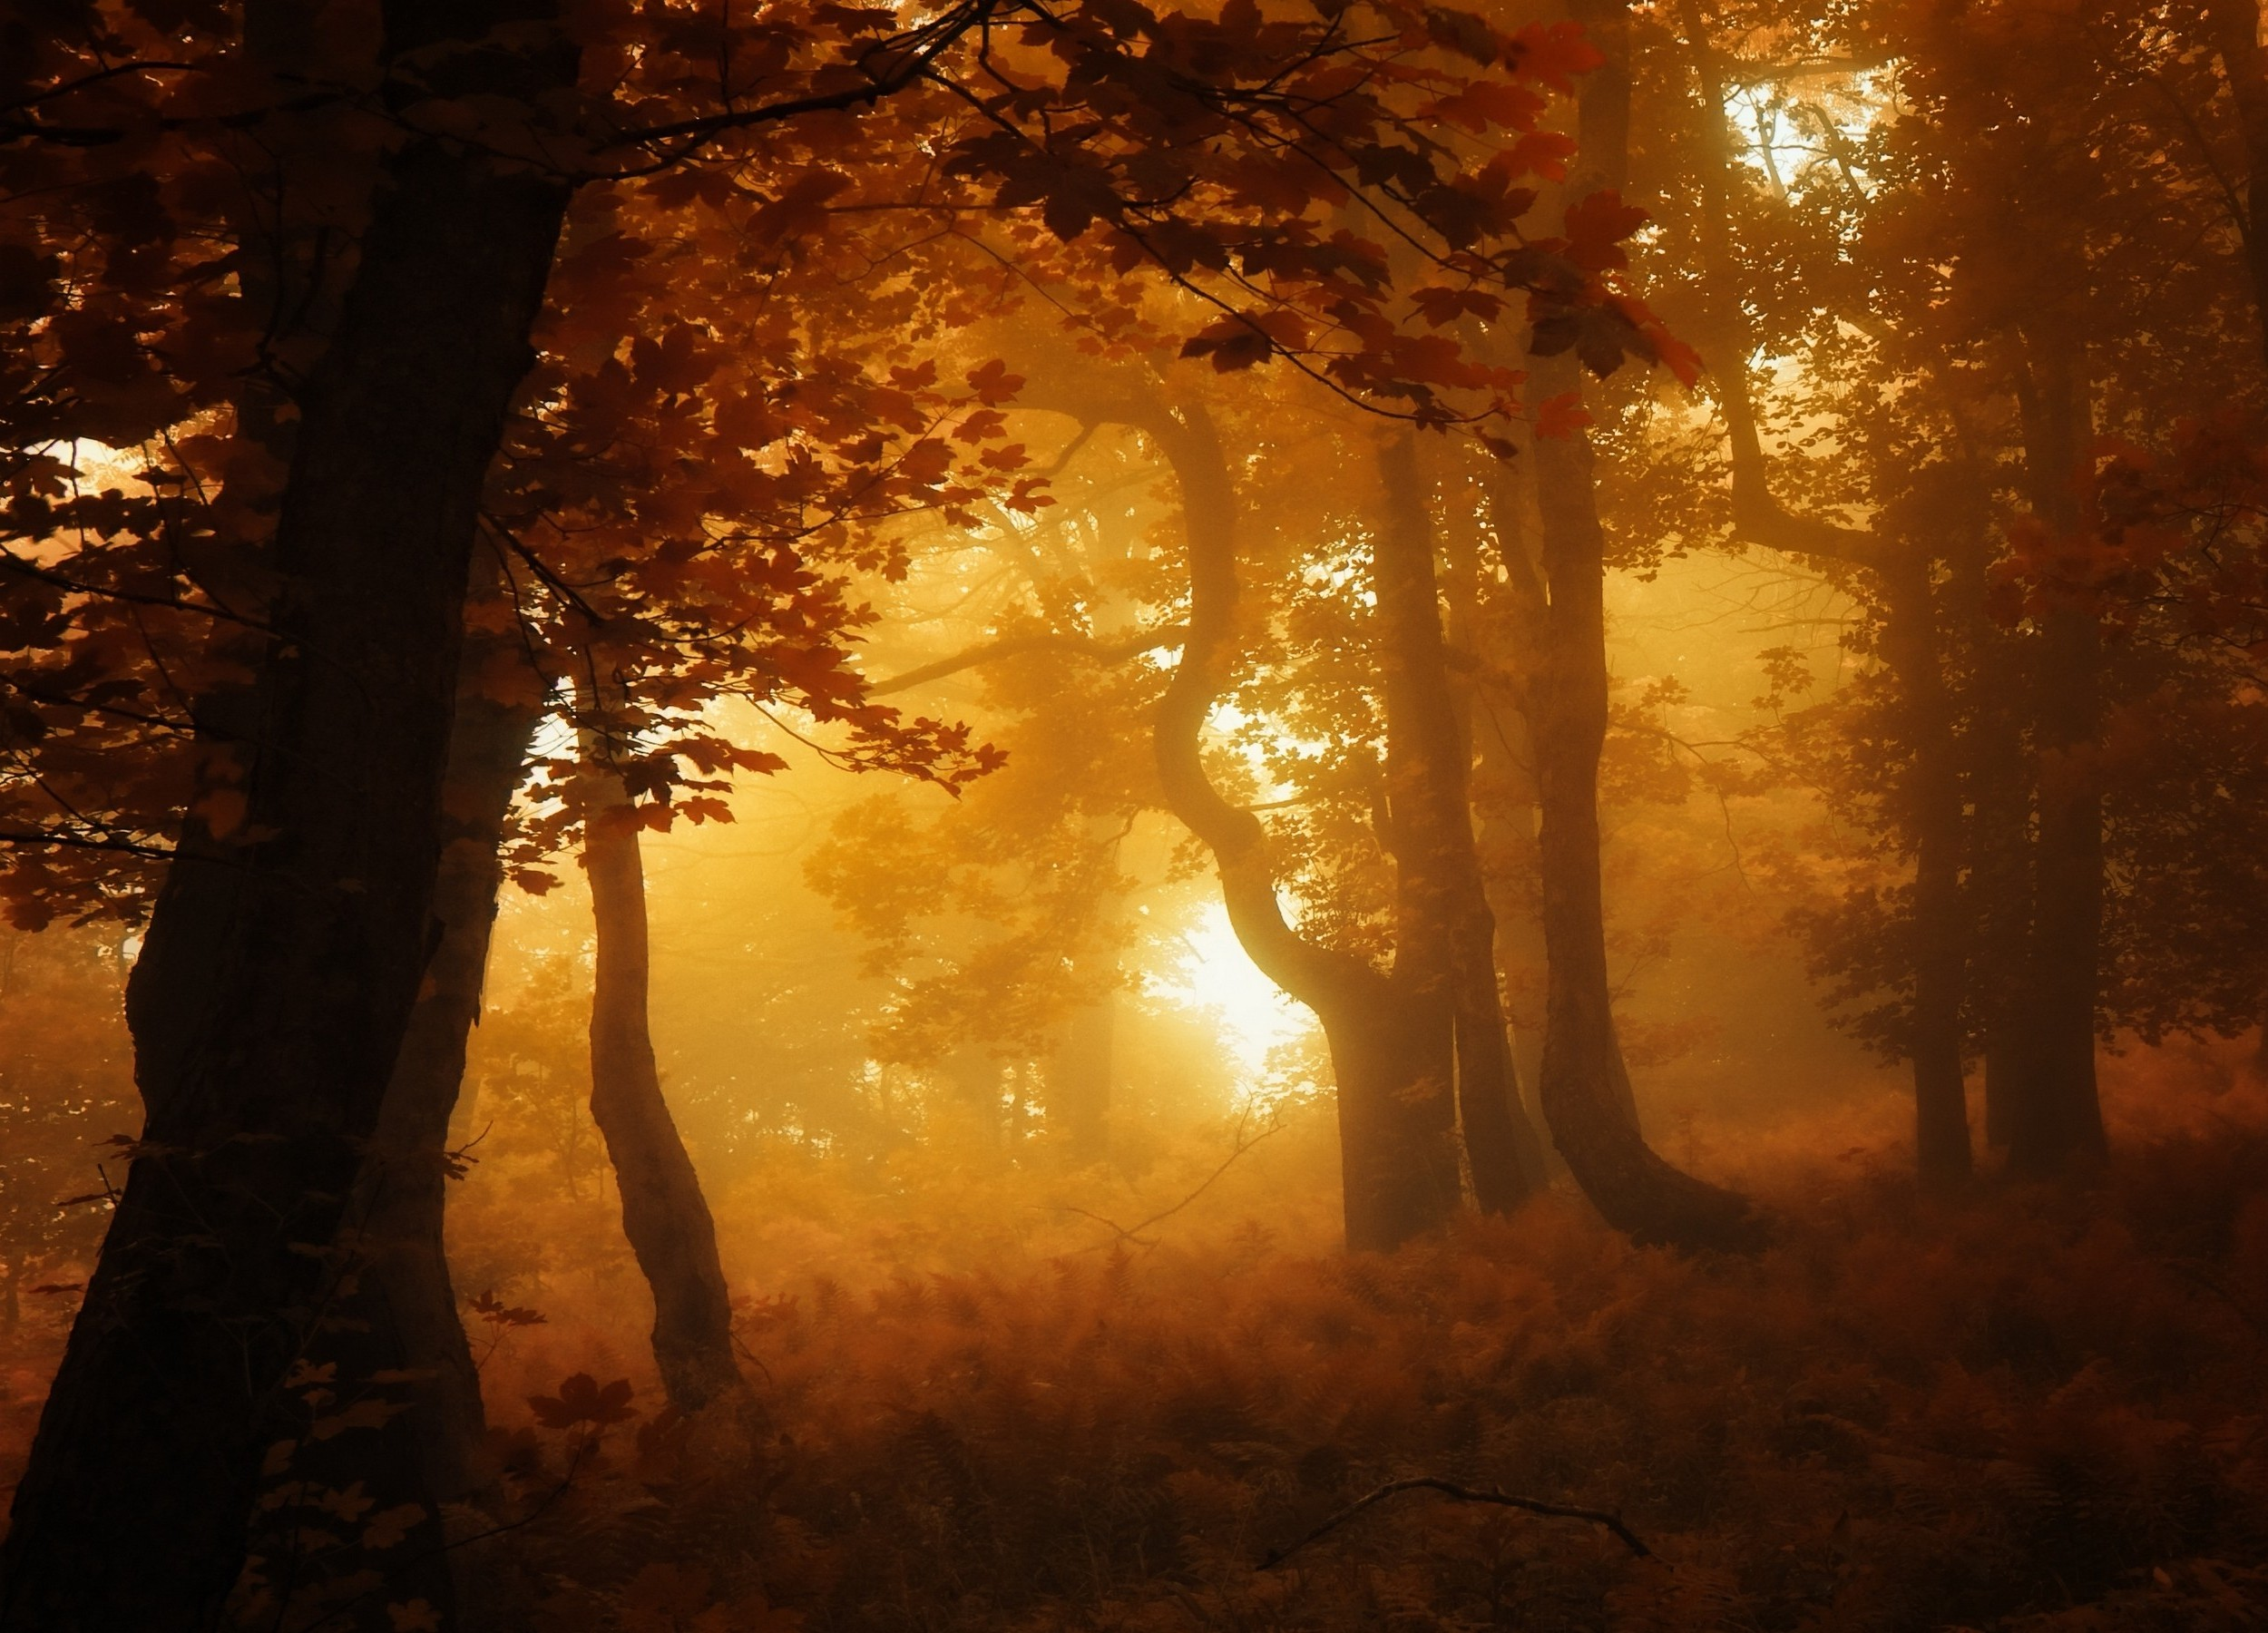 Fall Leaves Hd Wallpaper Nature Forest Mist Sunrise Leaves Fall Trees